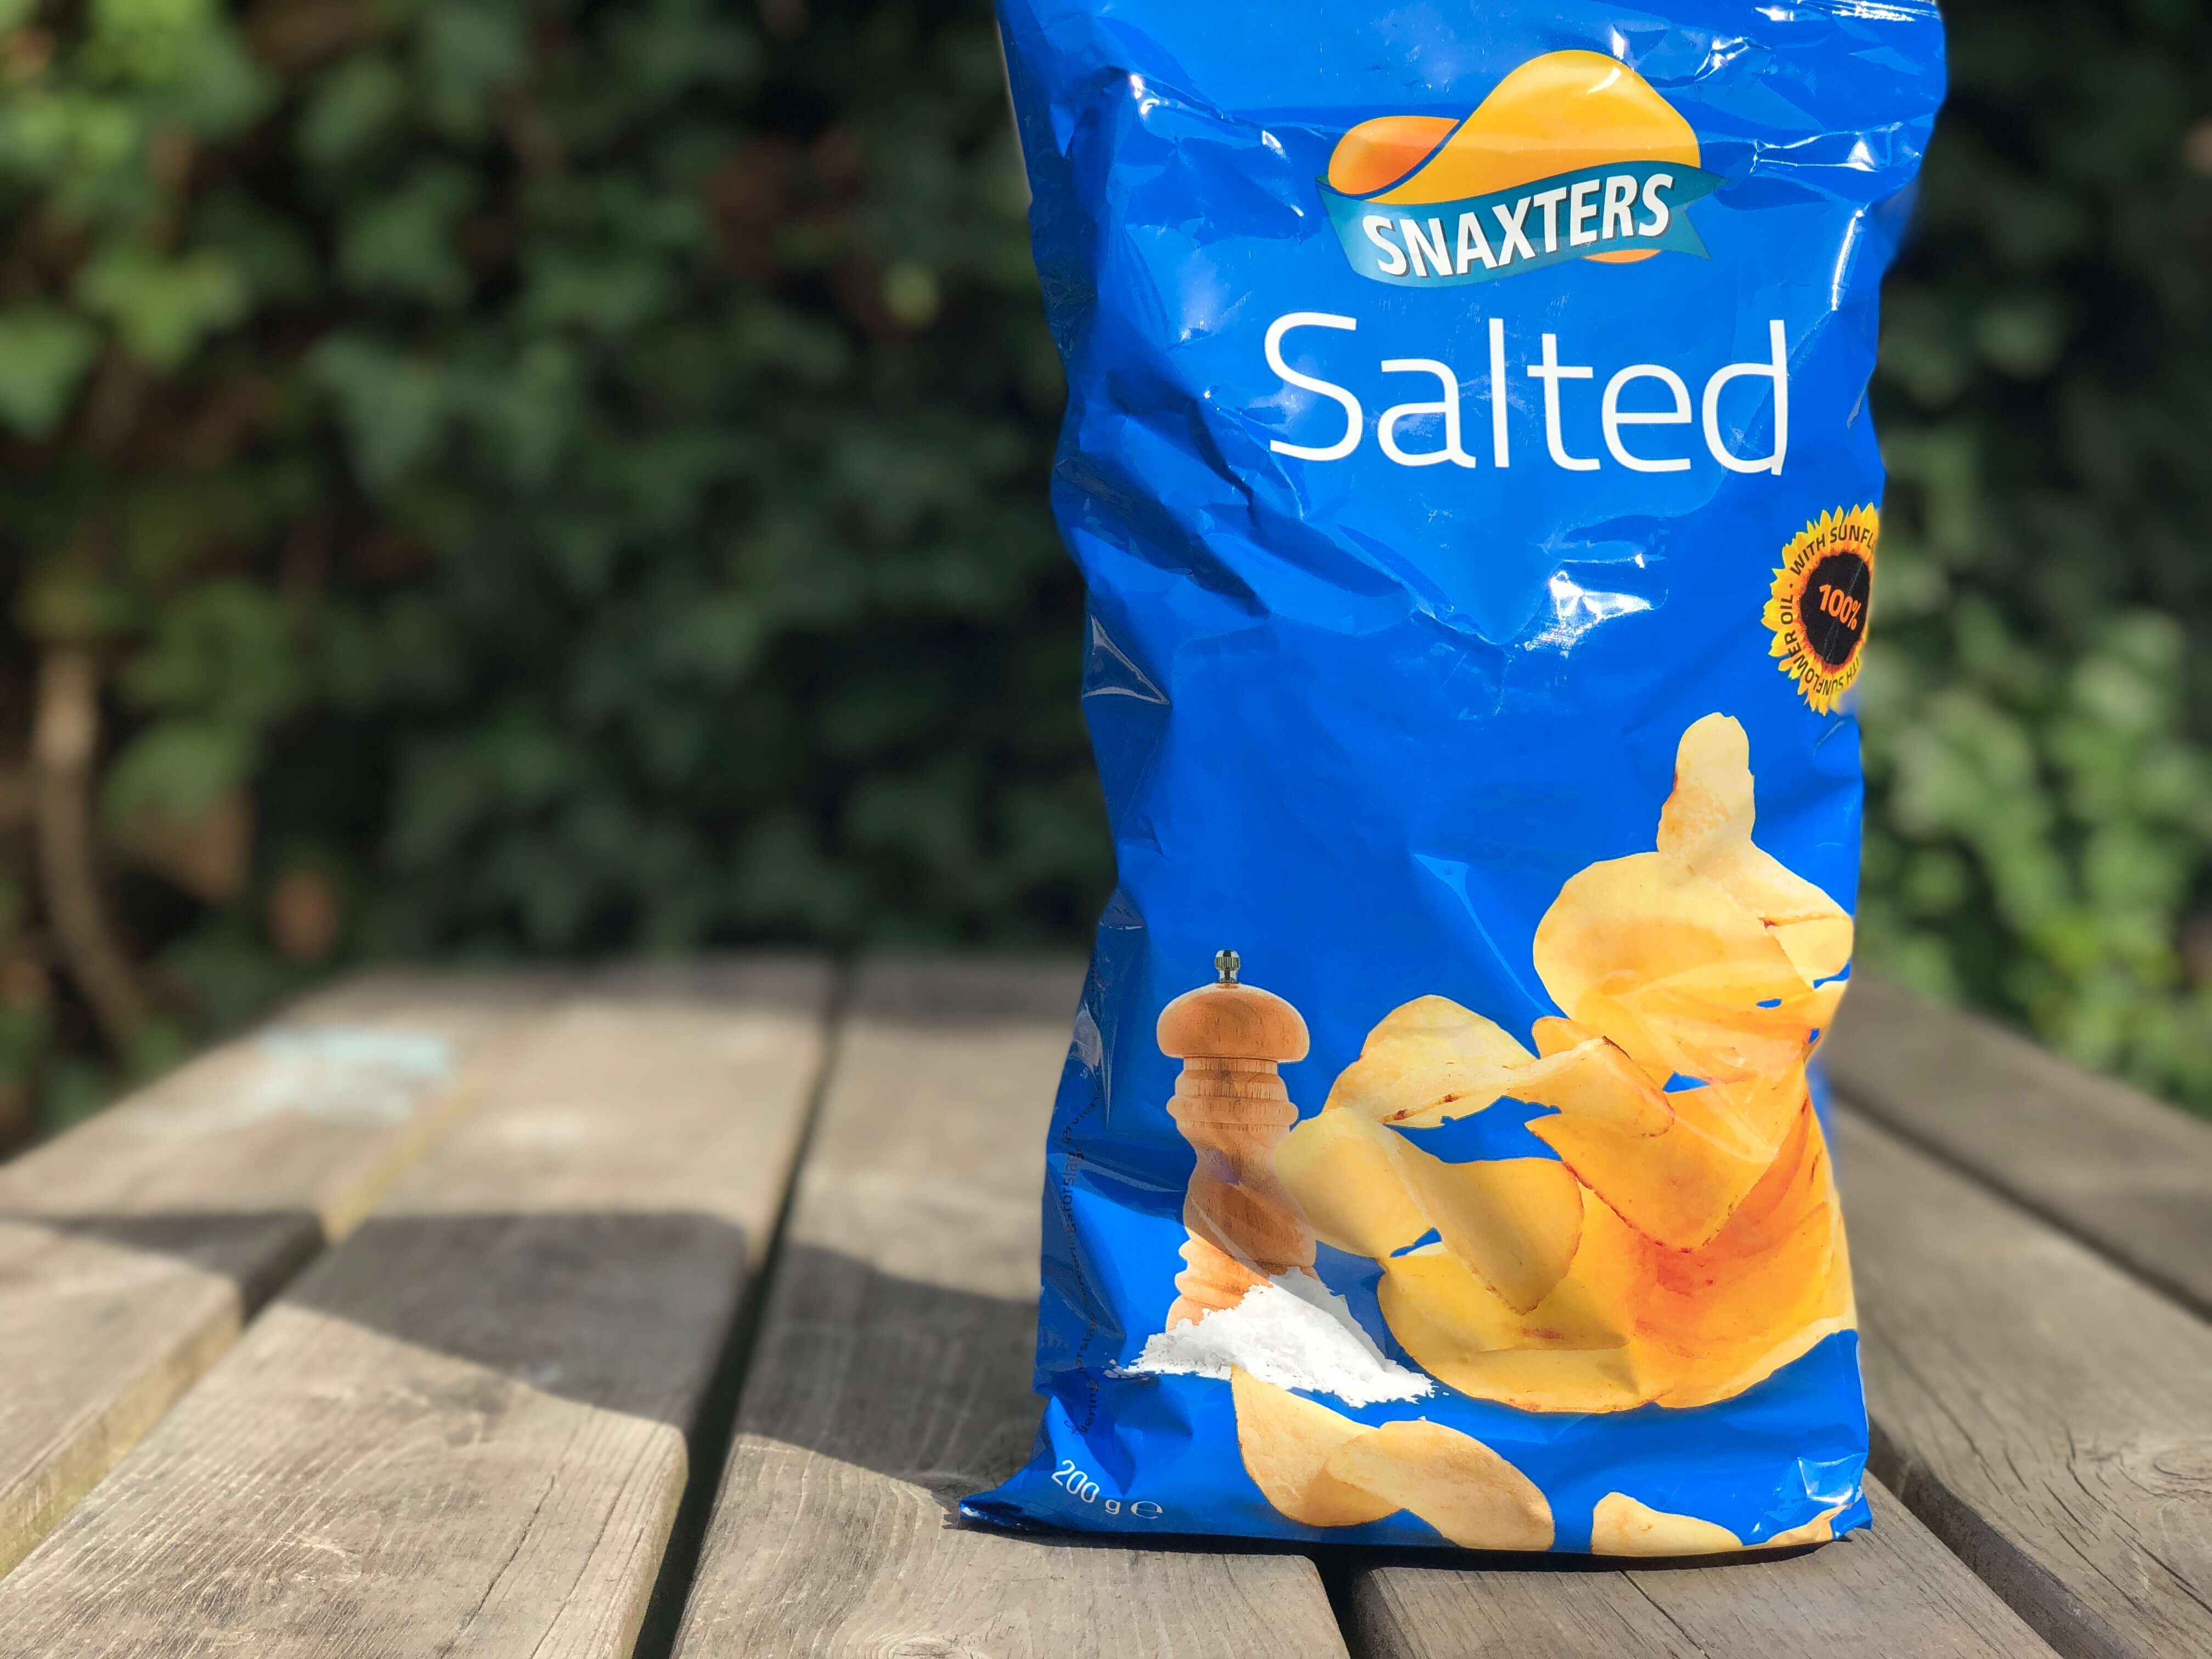 snaxters salted